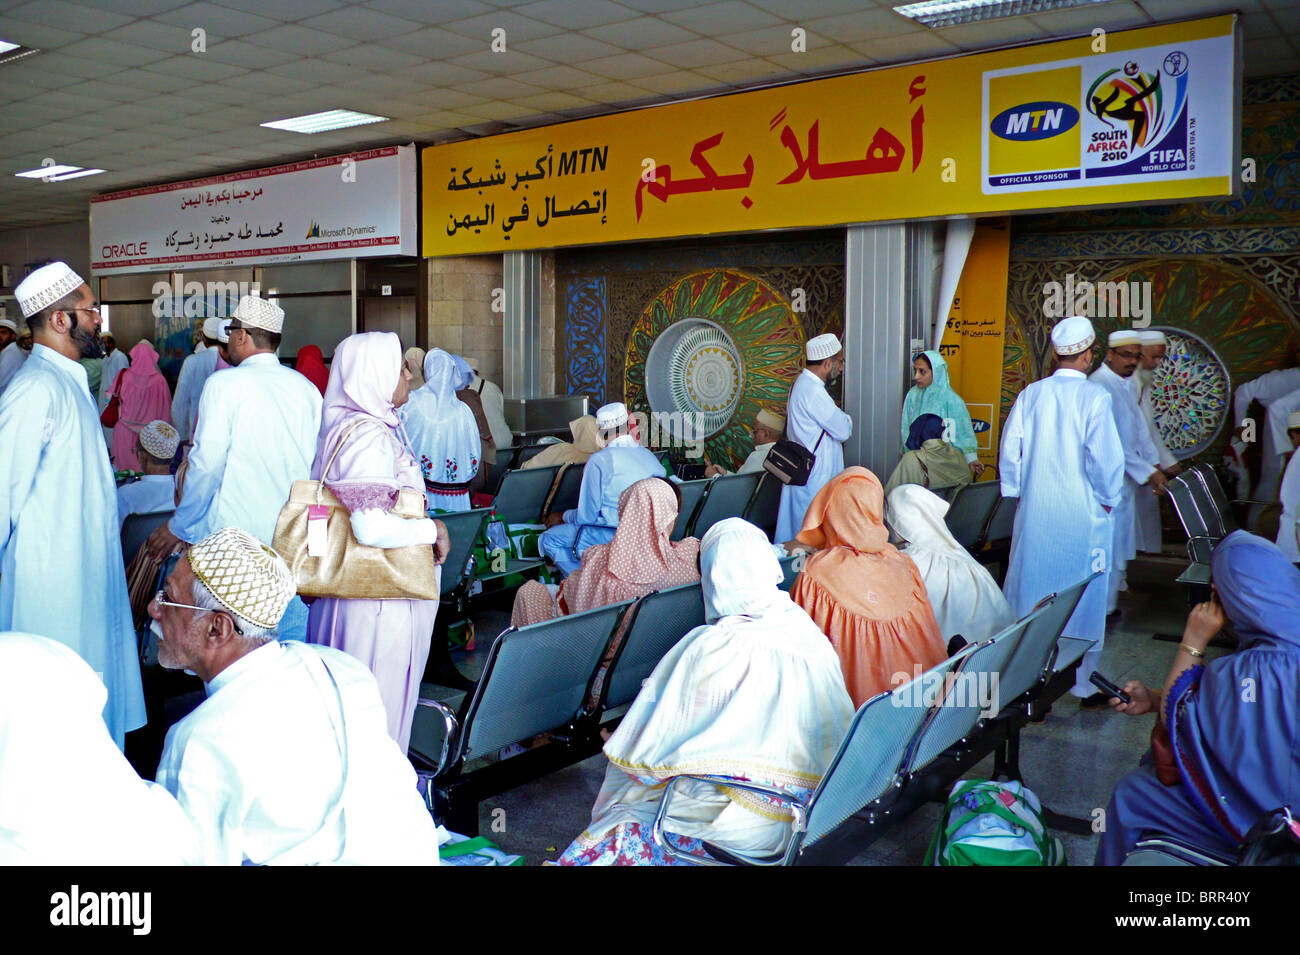 Passengers waiting in departure lounge at Sana'a airport Stock Photo